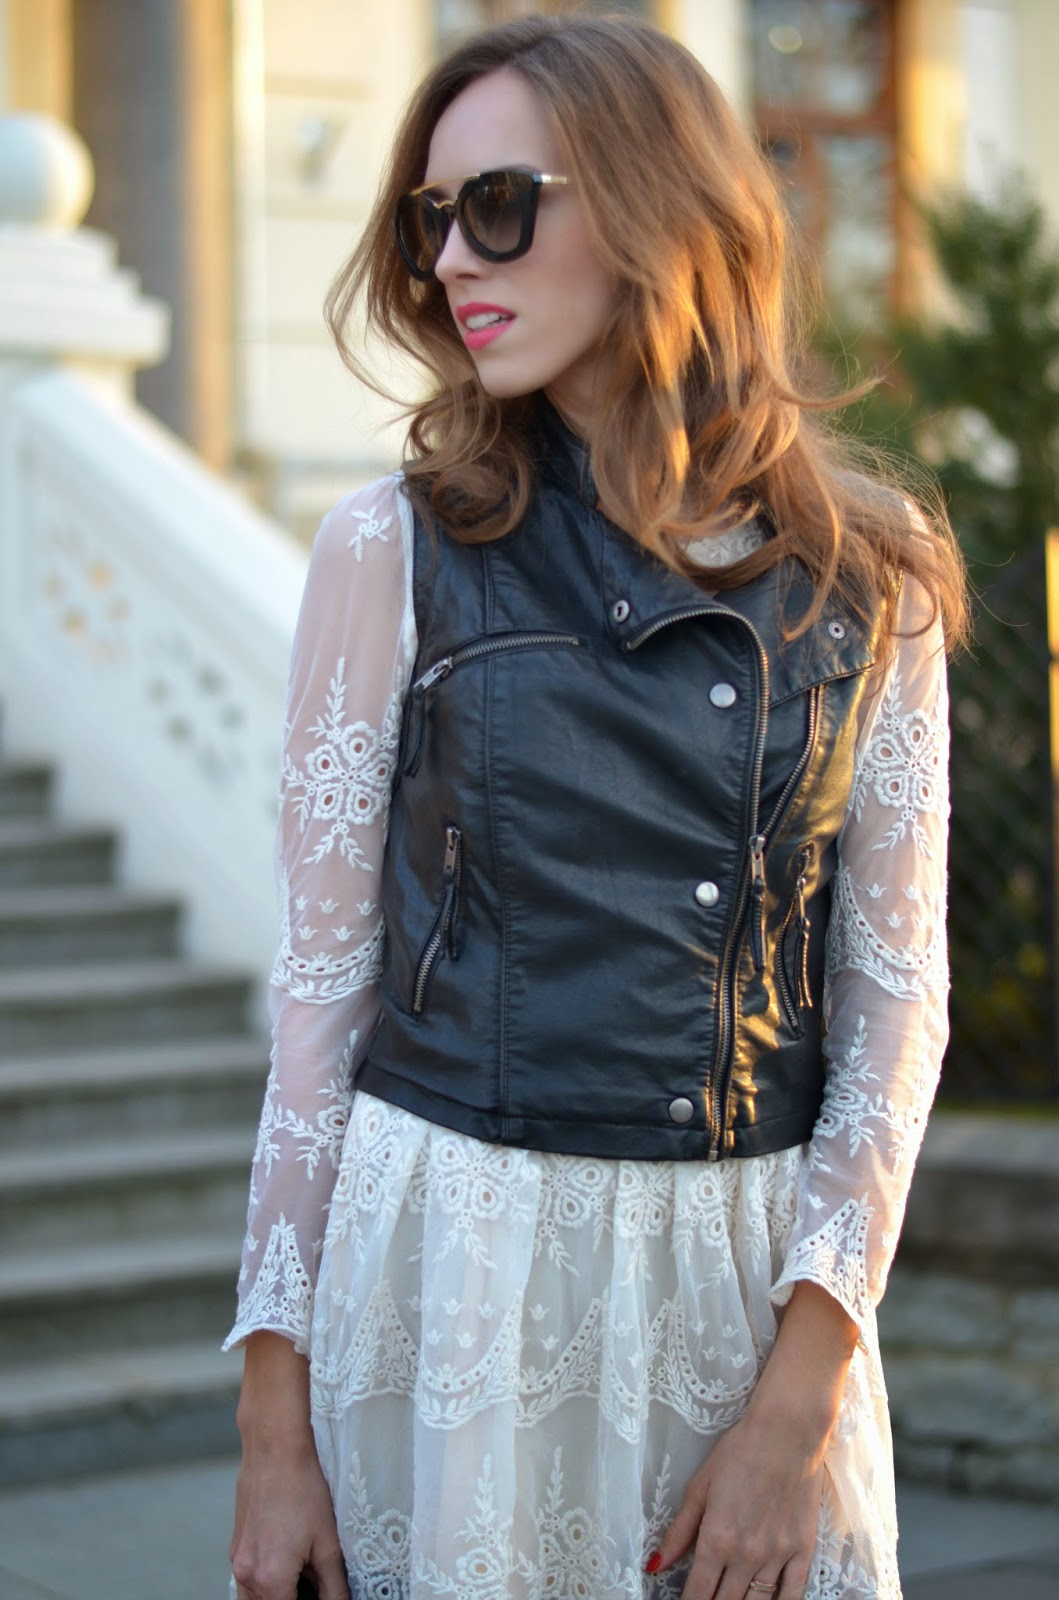 bershka-leather-vest-chicwish-white-dress-fashion-street-style-outfit kristjaana mere